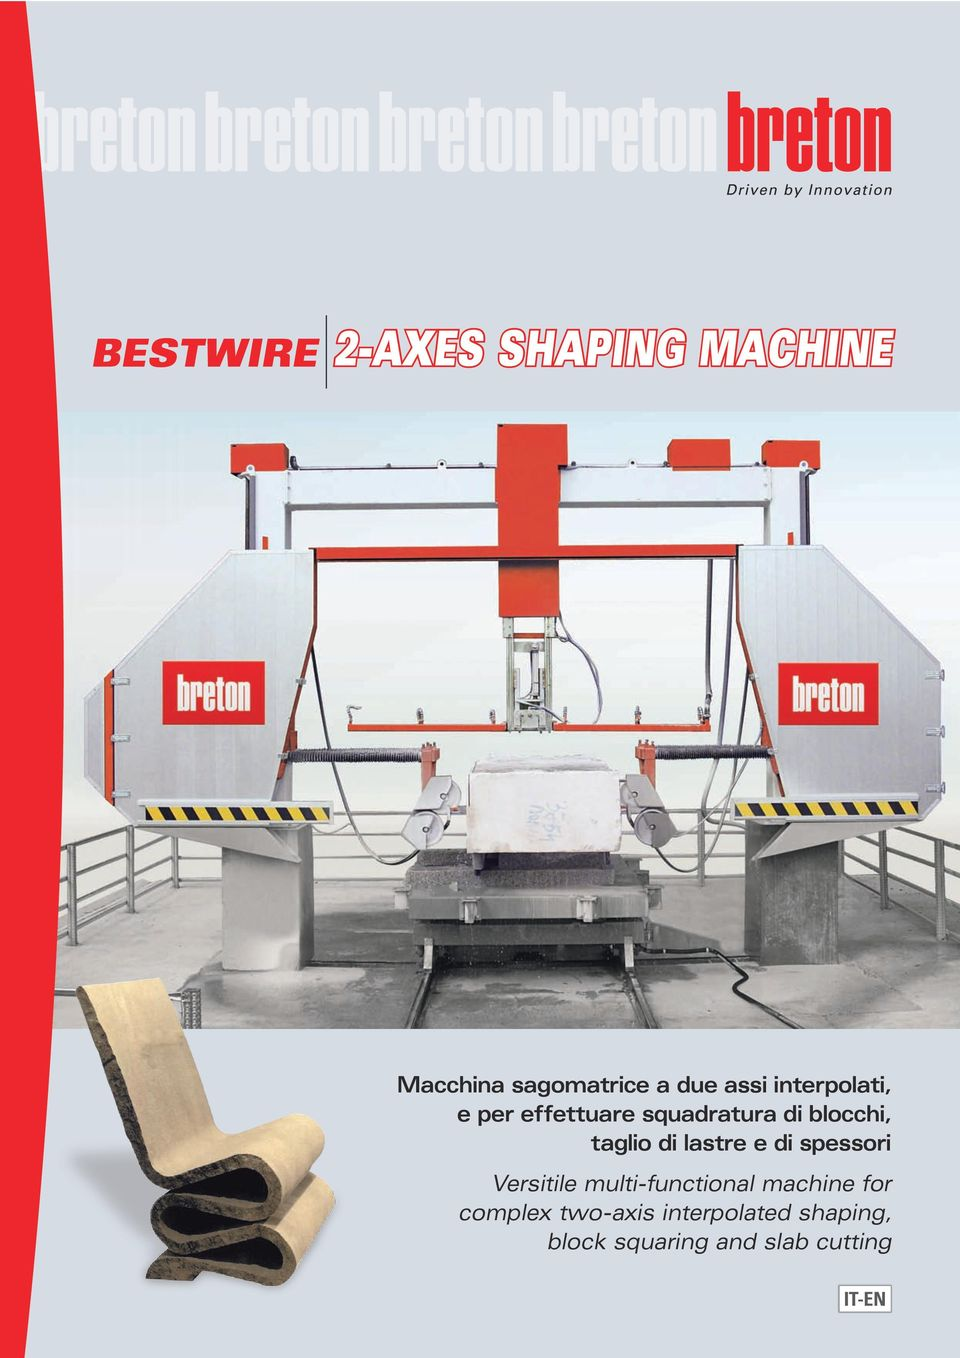 lastre e di spessori Versitile multi-functional machine for